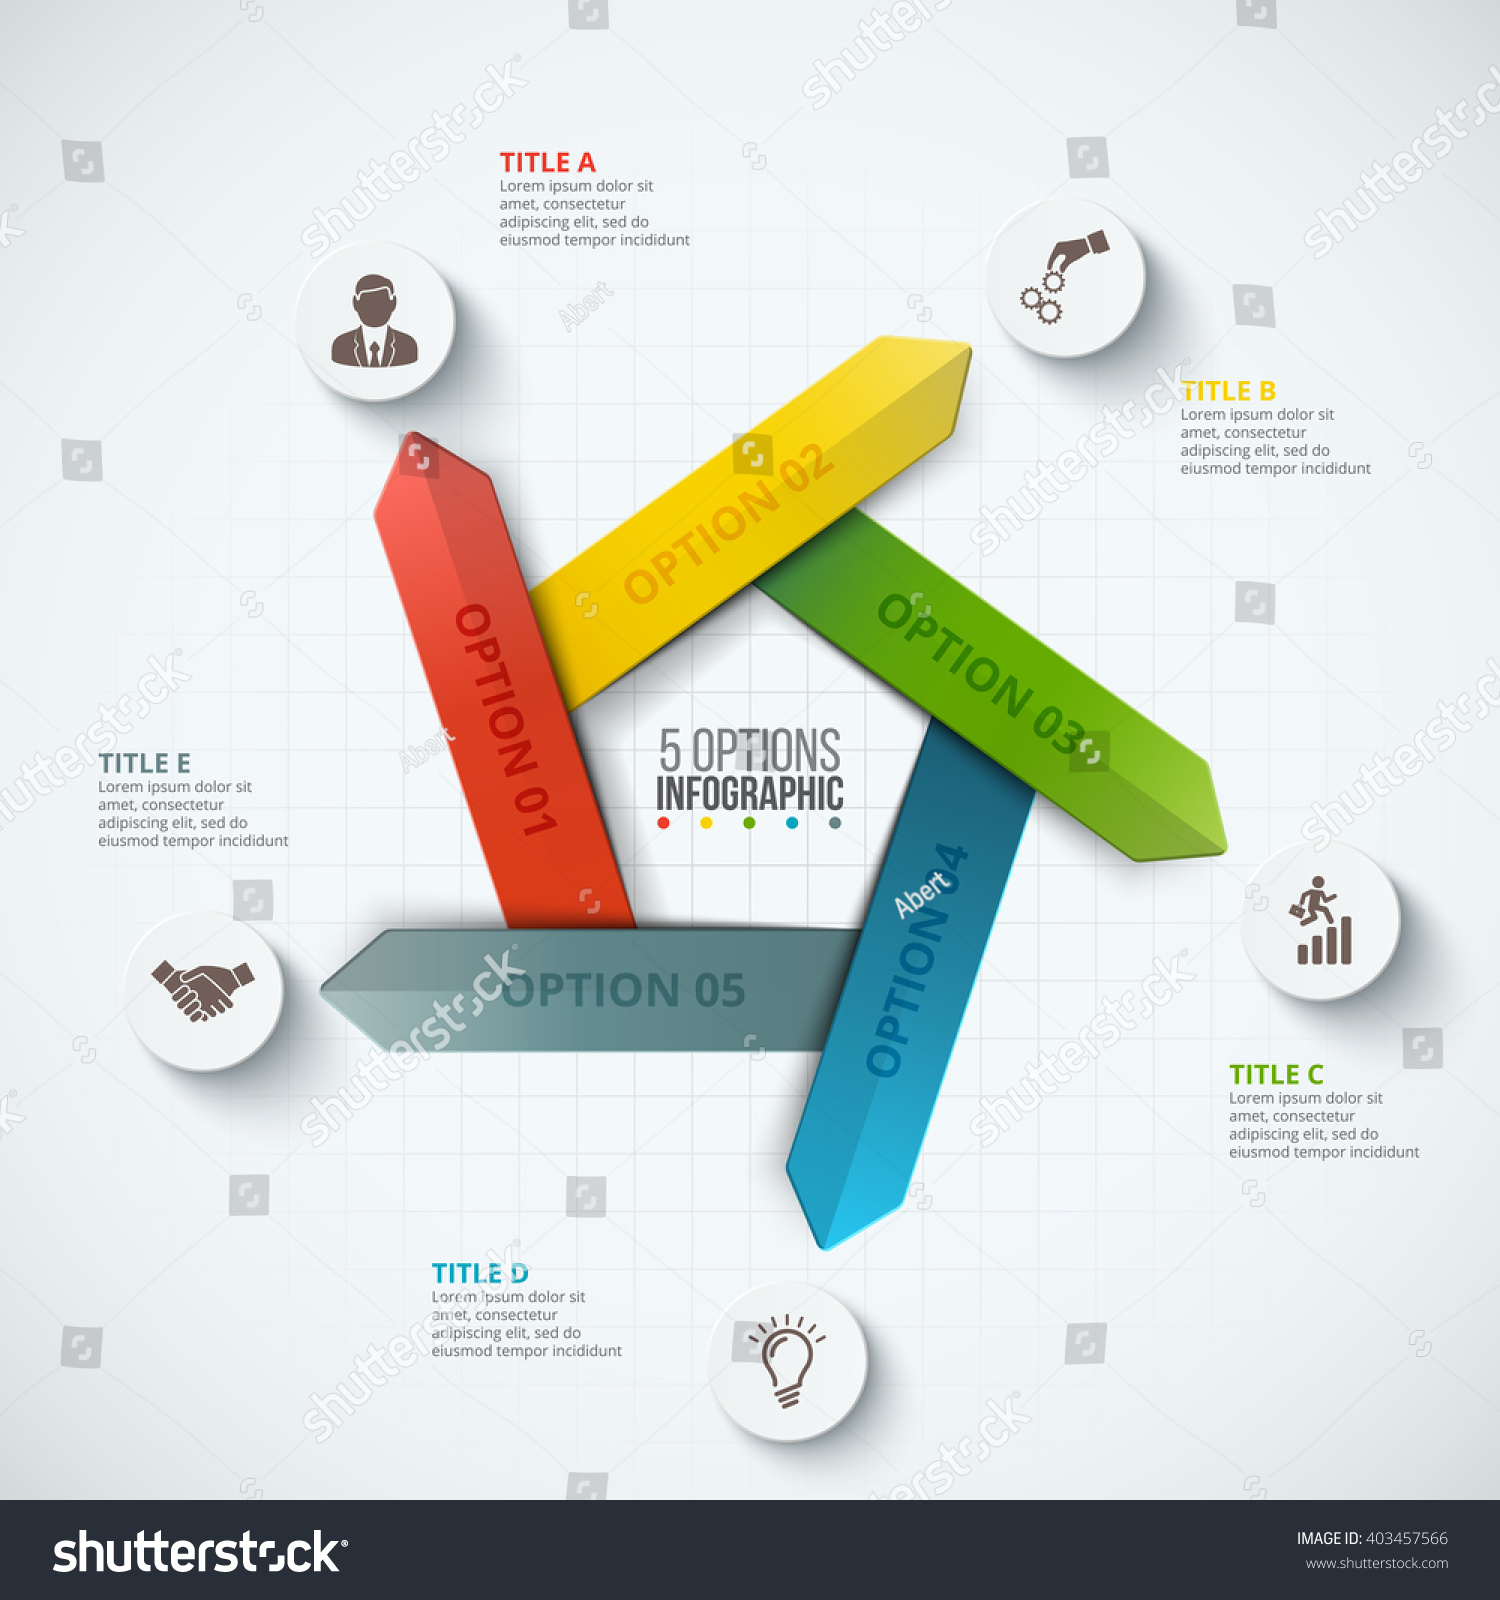 Process cycling arrow by arrow royalty free stock images image - Vector Arrows Infographic Template For Cycle Diagram Graph Presentation And Round Chart